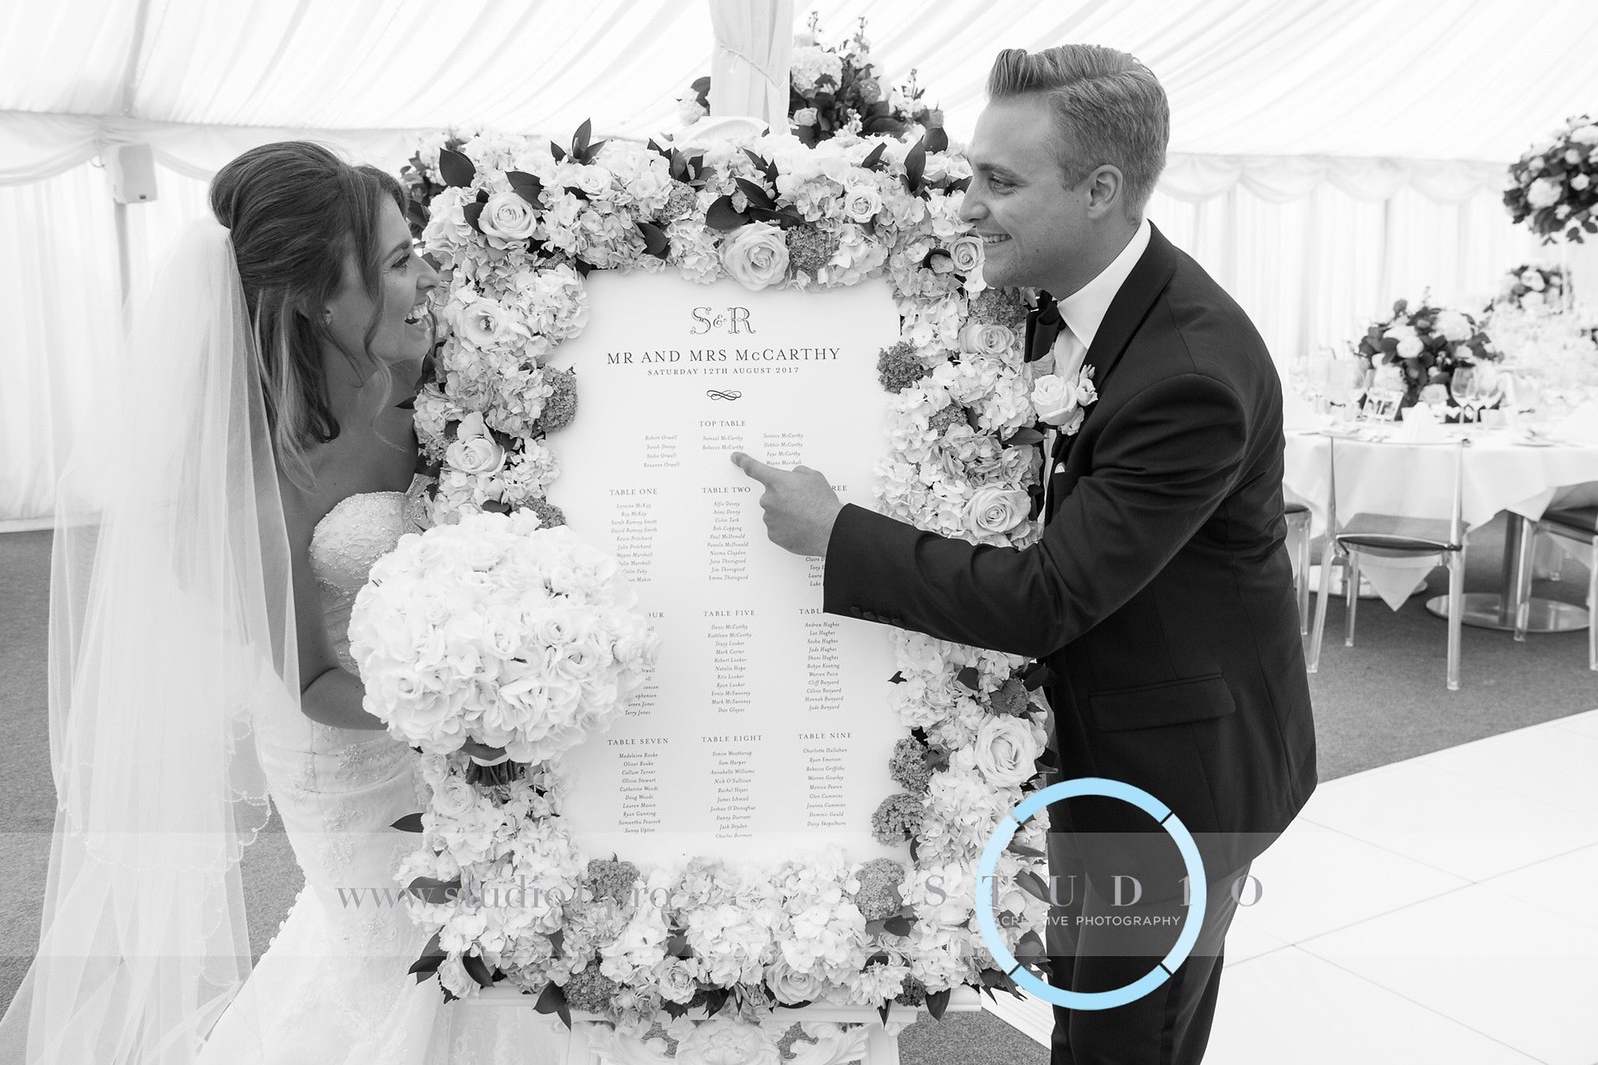 Haworth Table Plan, Photograph by www.studio1.pro